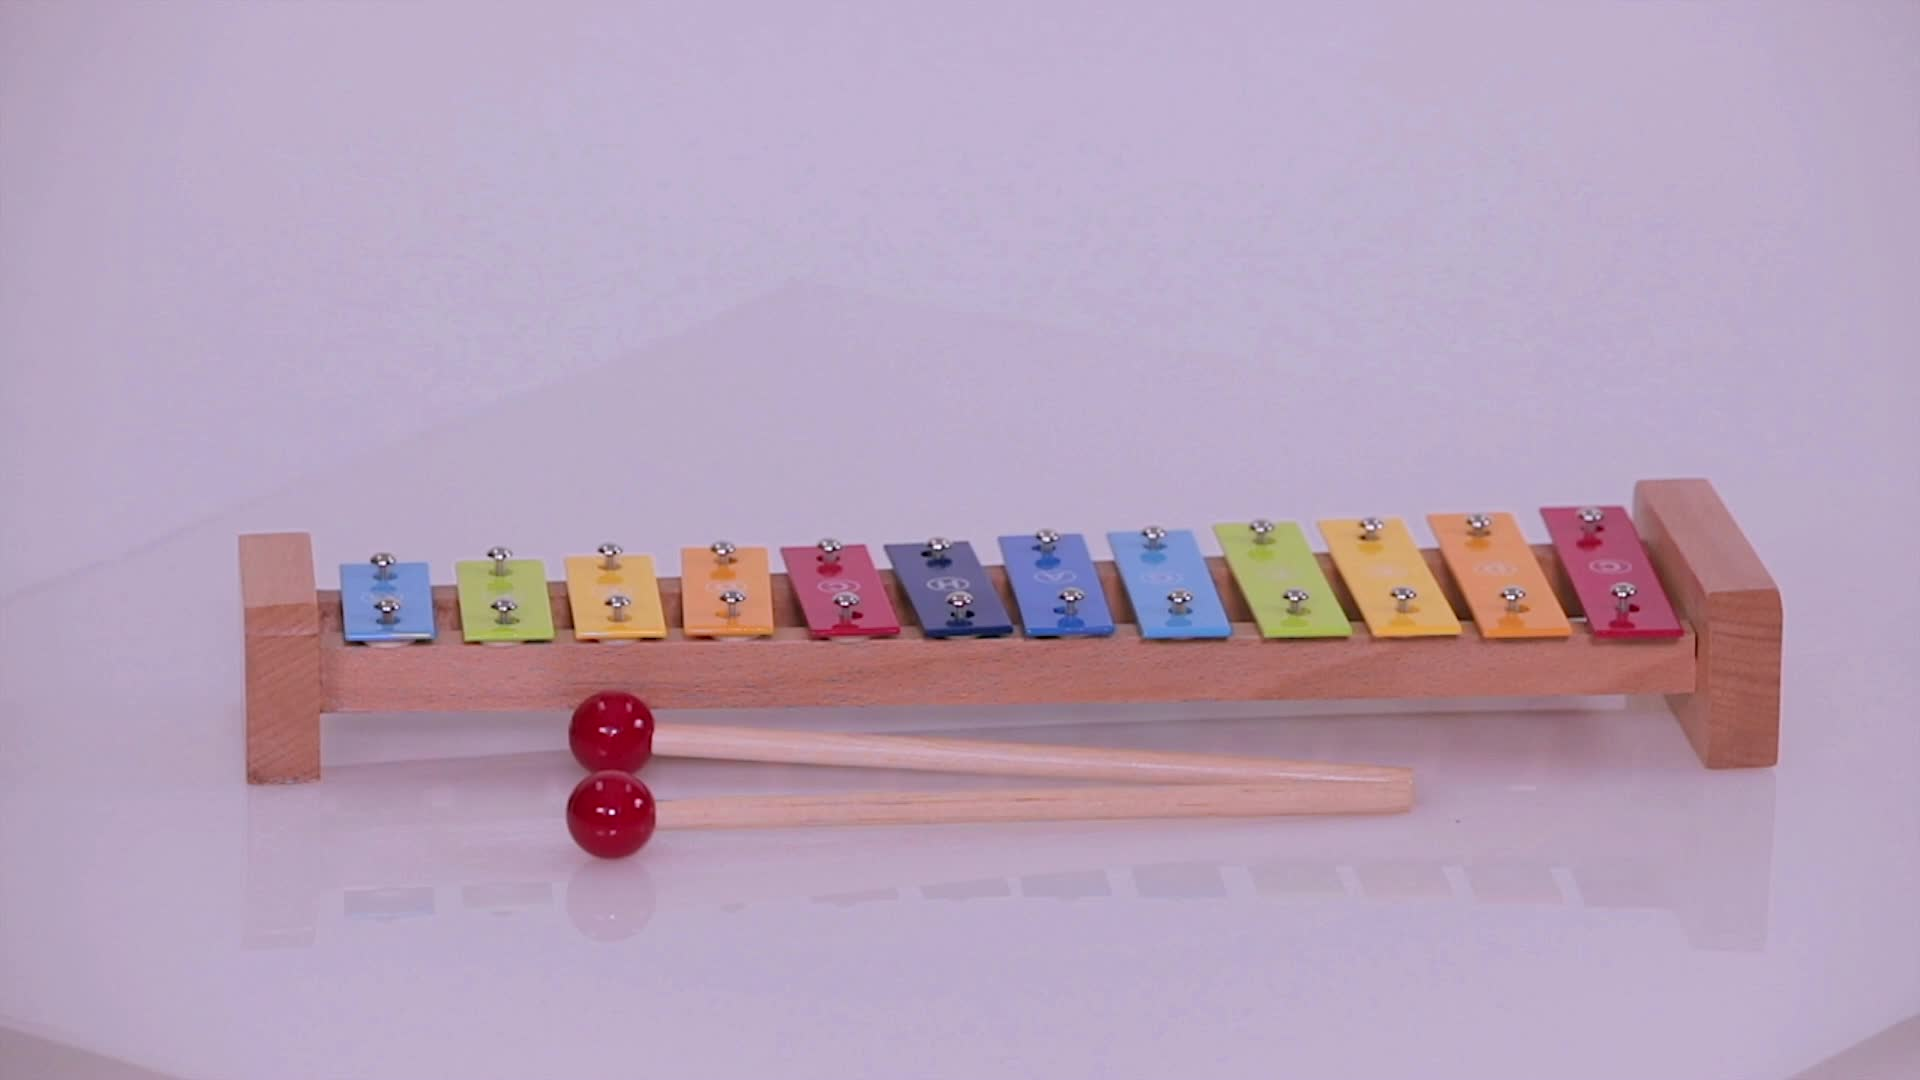 Quality Kindergarten Professional Orff Children Percussion Instrument Toys Colorful 12 Key/Tone Metallophone